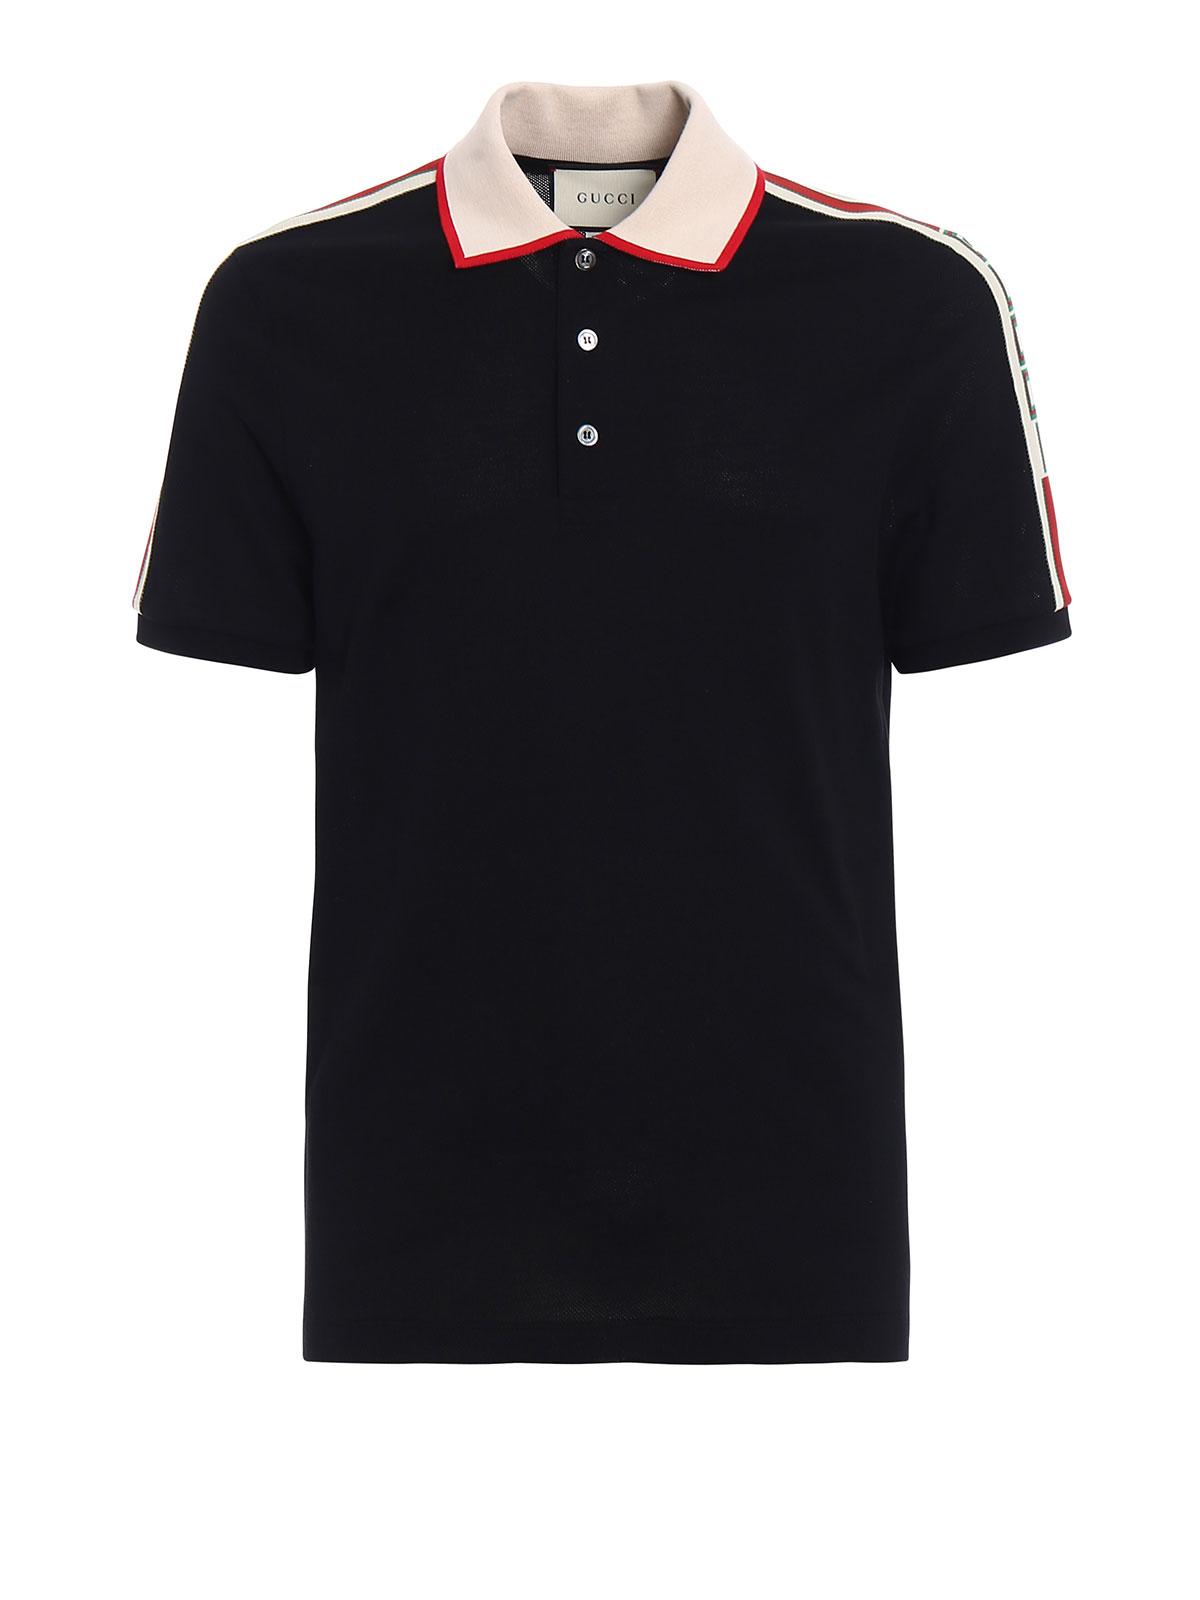 Cotton web polo shirt by gucci polo shirts ikrix for Cotton polo shirts with logo